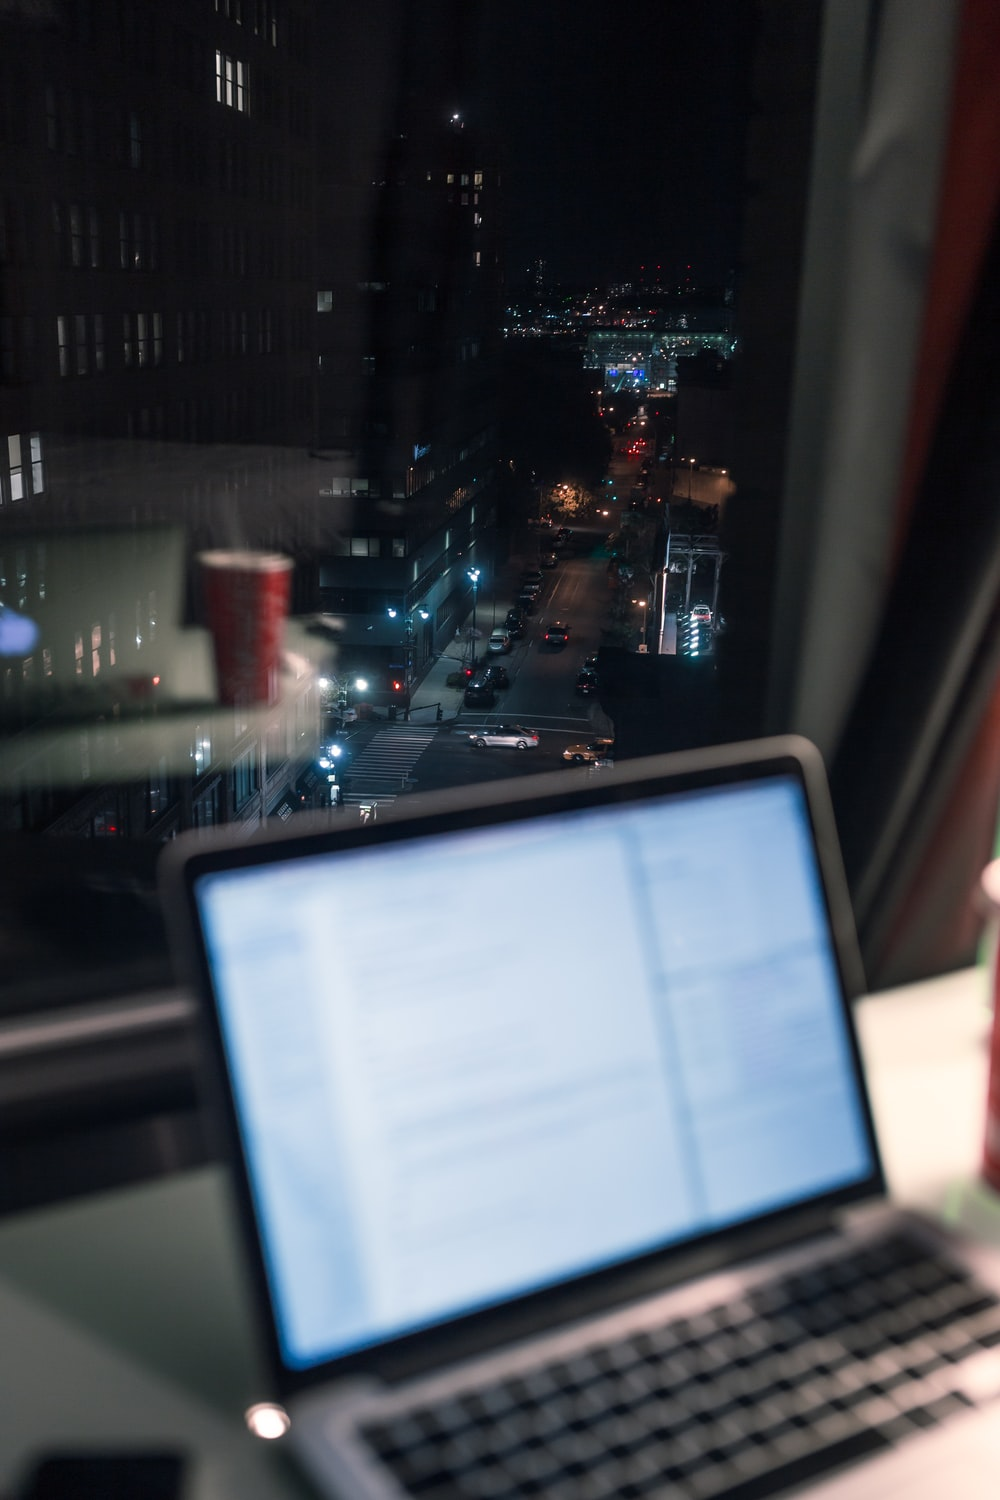 black laptop computer turned on near city buildings during night time